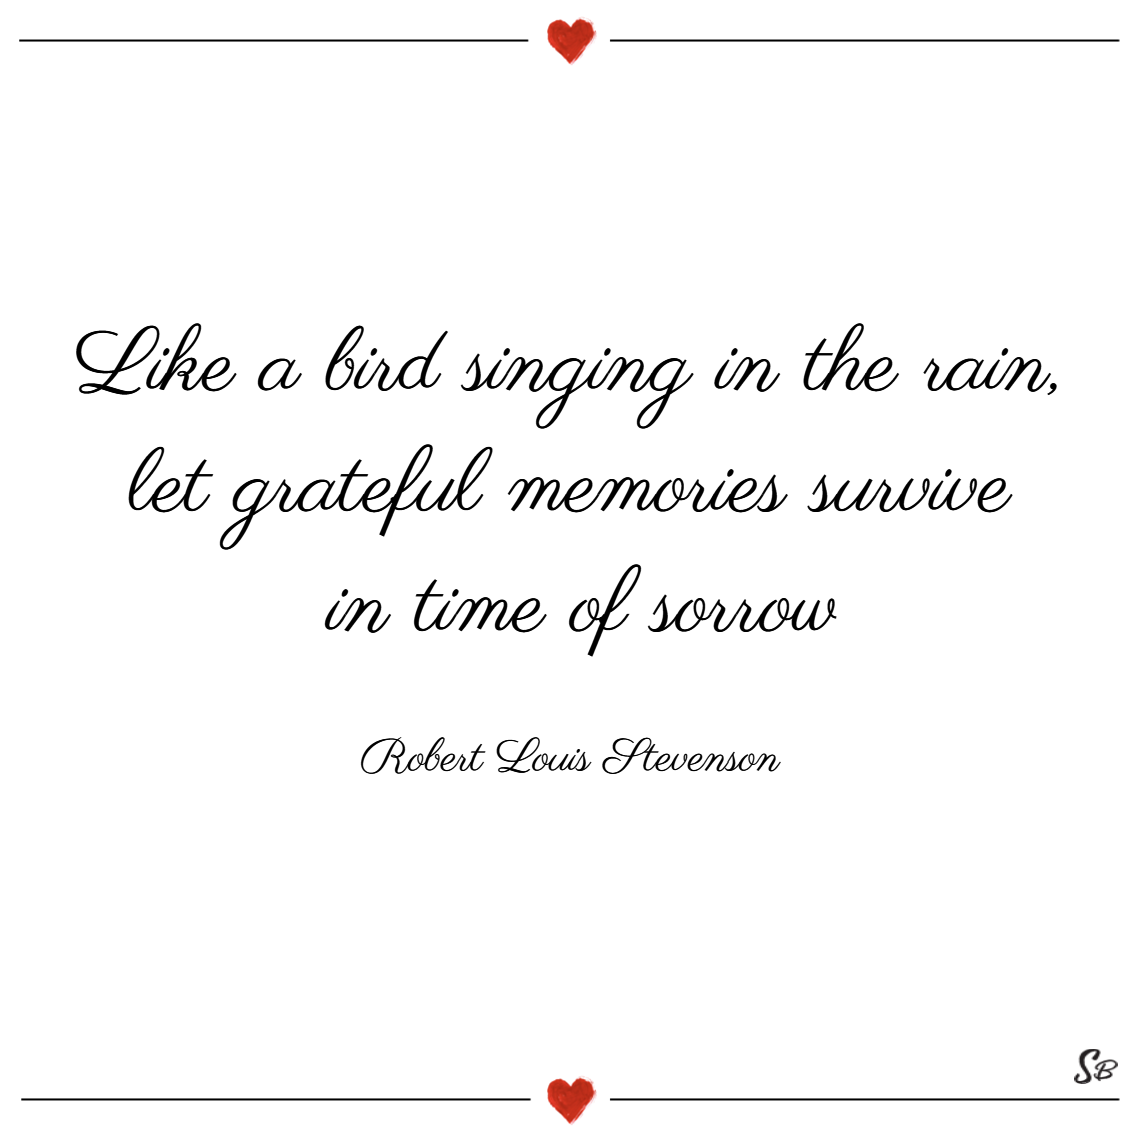 Like a bird singing in the rain, let grateful memories survive in time of sorrow. – robert louis stevenson